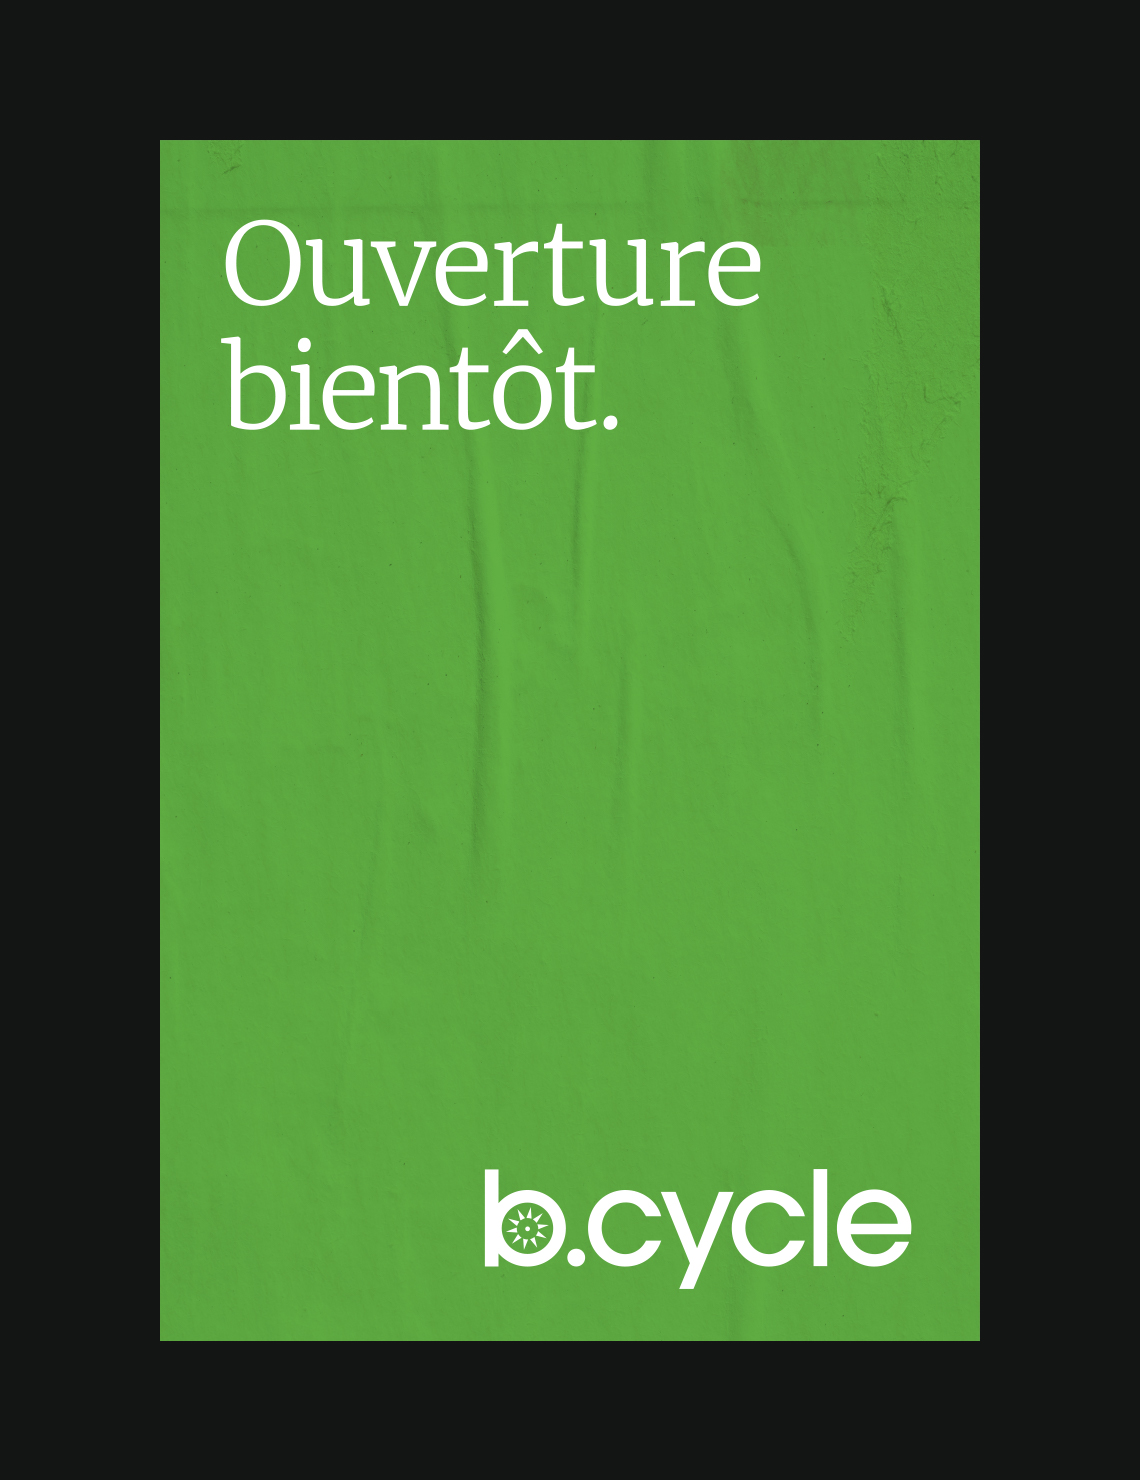 bcycle-4